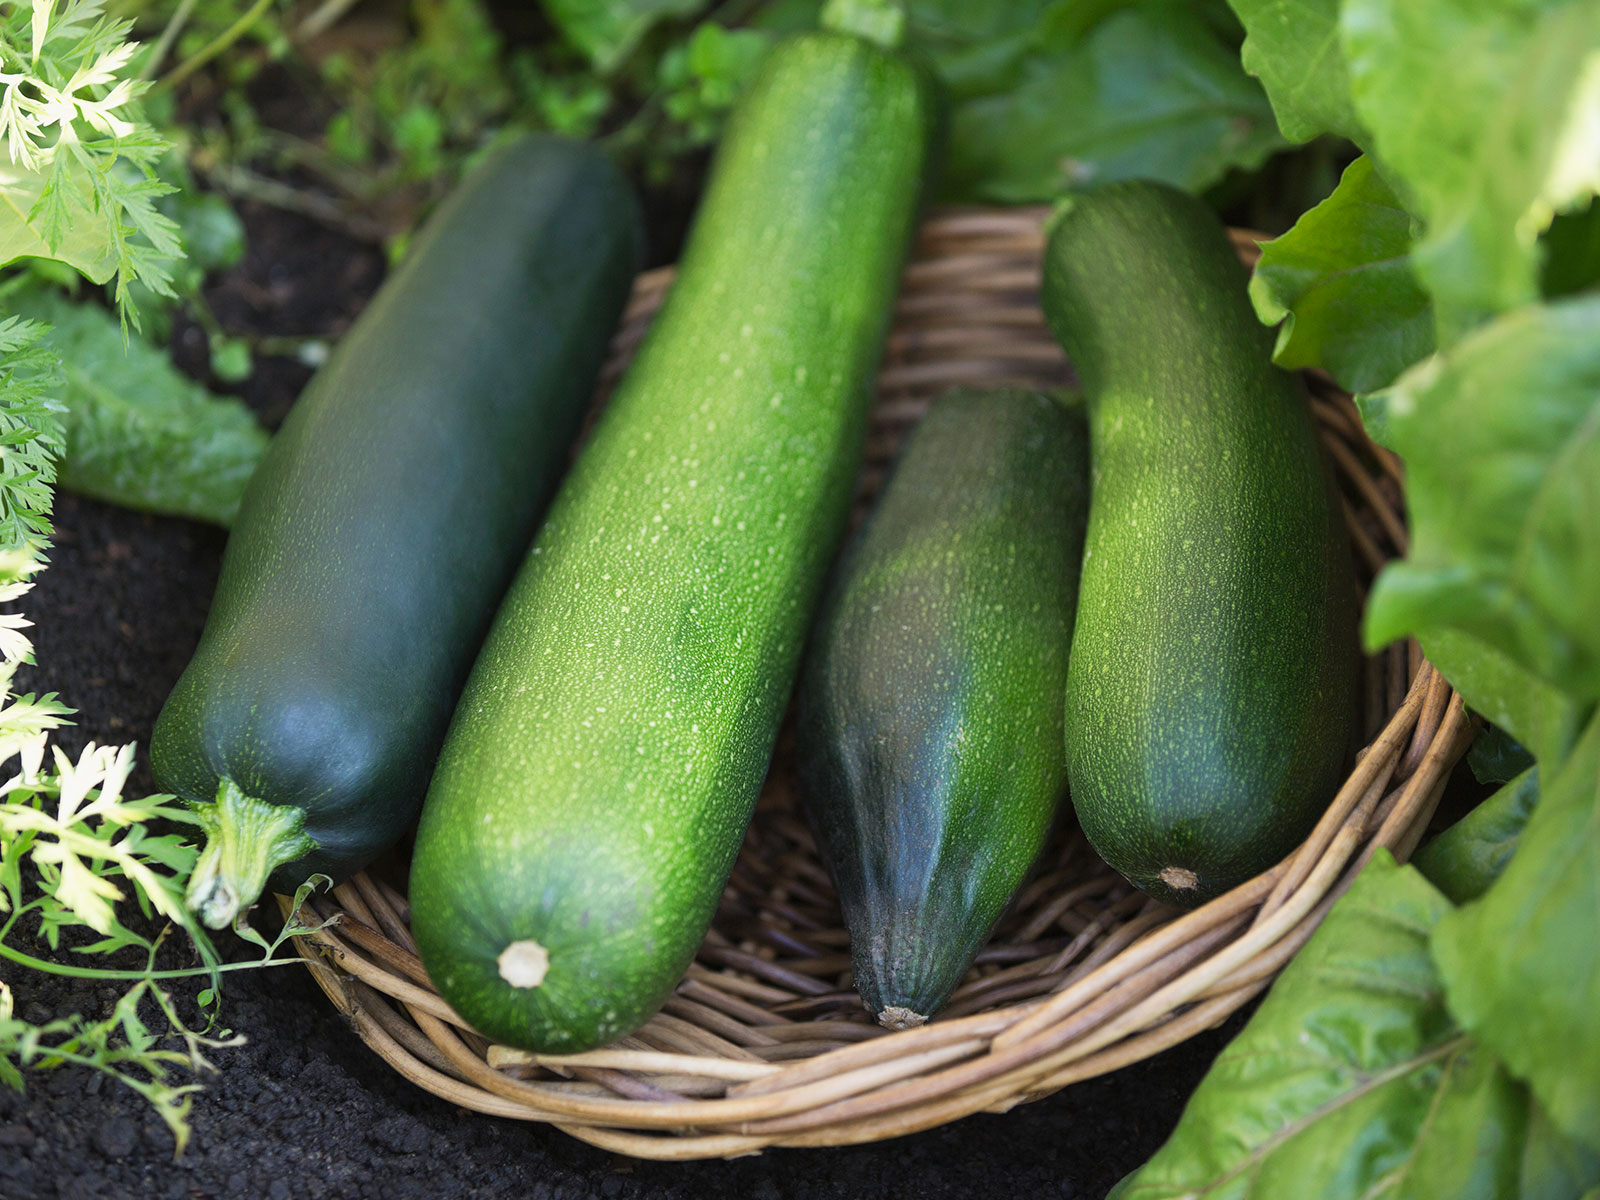 Happy National Sneak Some Zucchini Onto Your Neighbor's Porch Day!